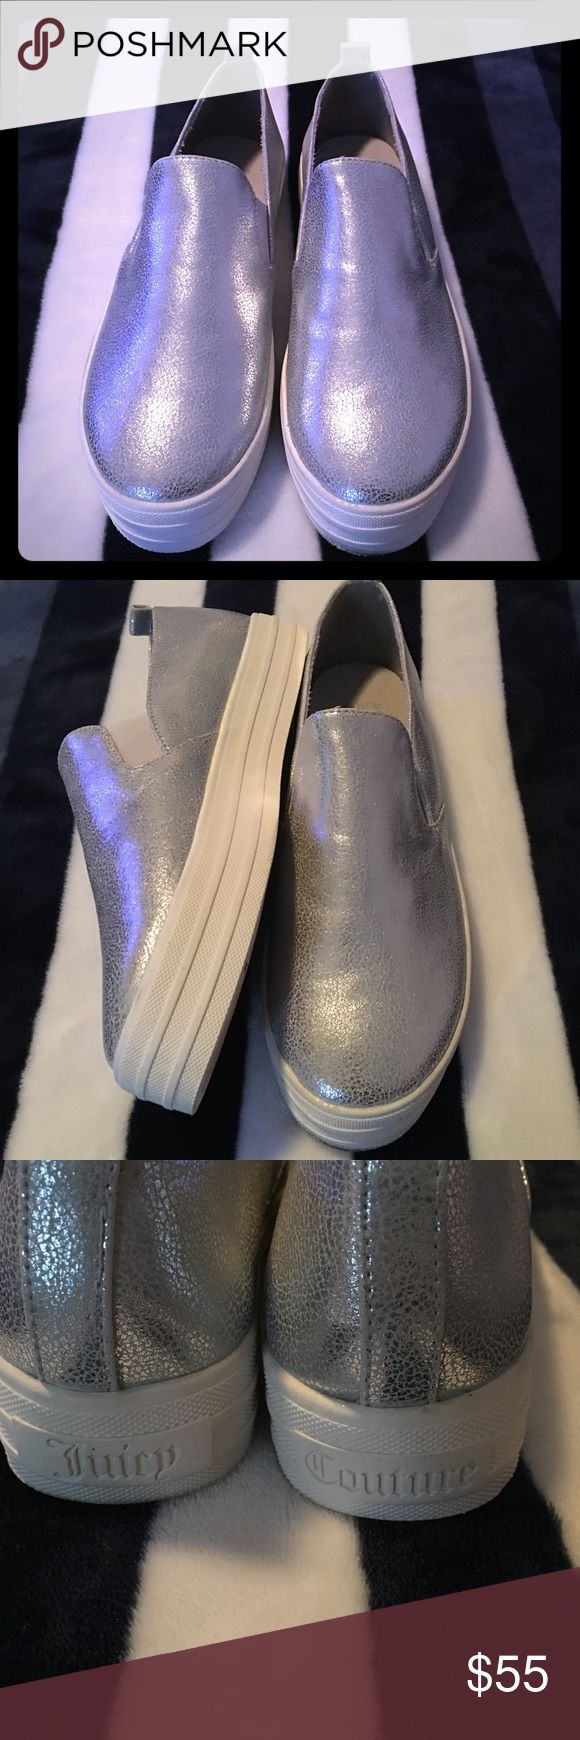 Juicy Couture Harbor Womens Size 6.5 Silver Juicy Couture Harbor Womens Size 6.5 Silver Loafers Shoes Juicy Couture Shoes Flats & Loafers